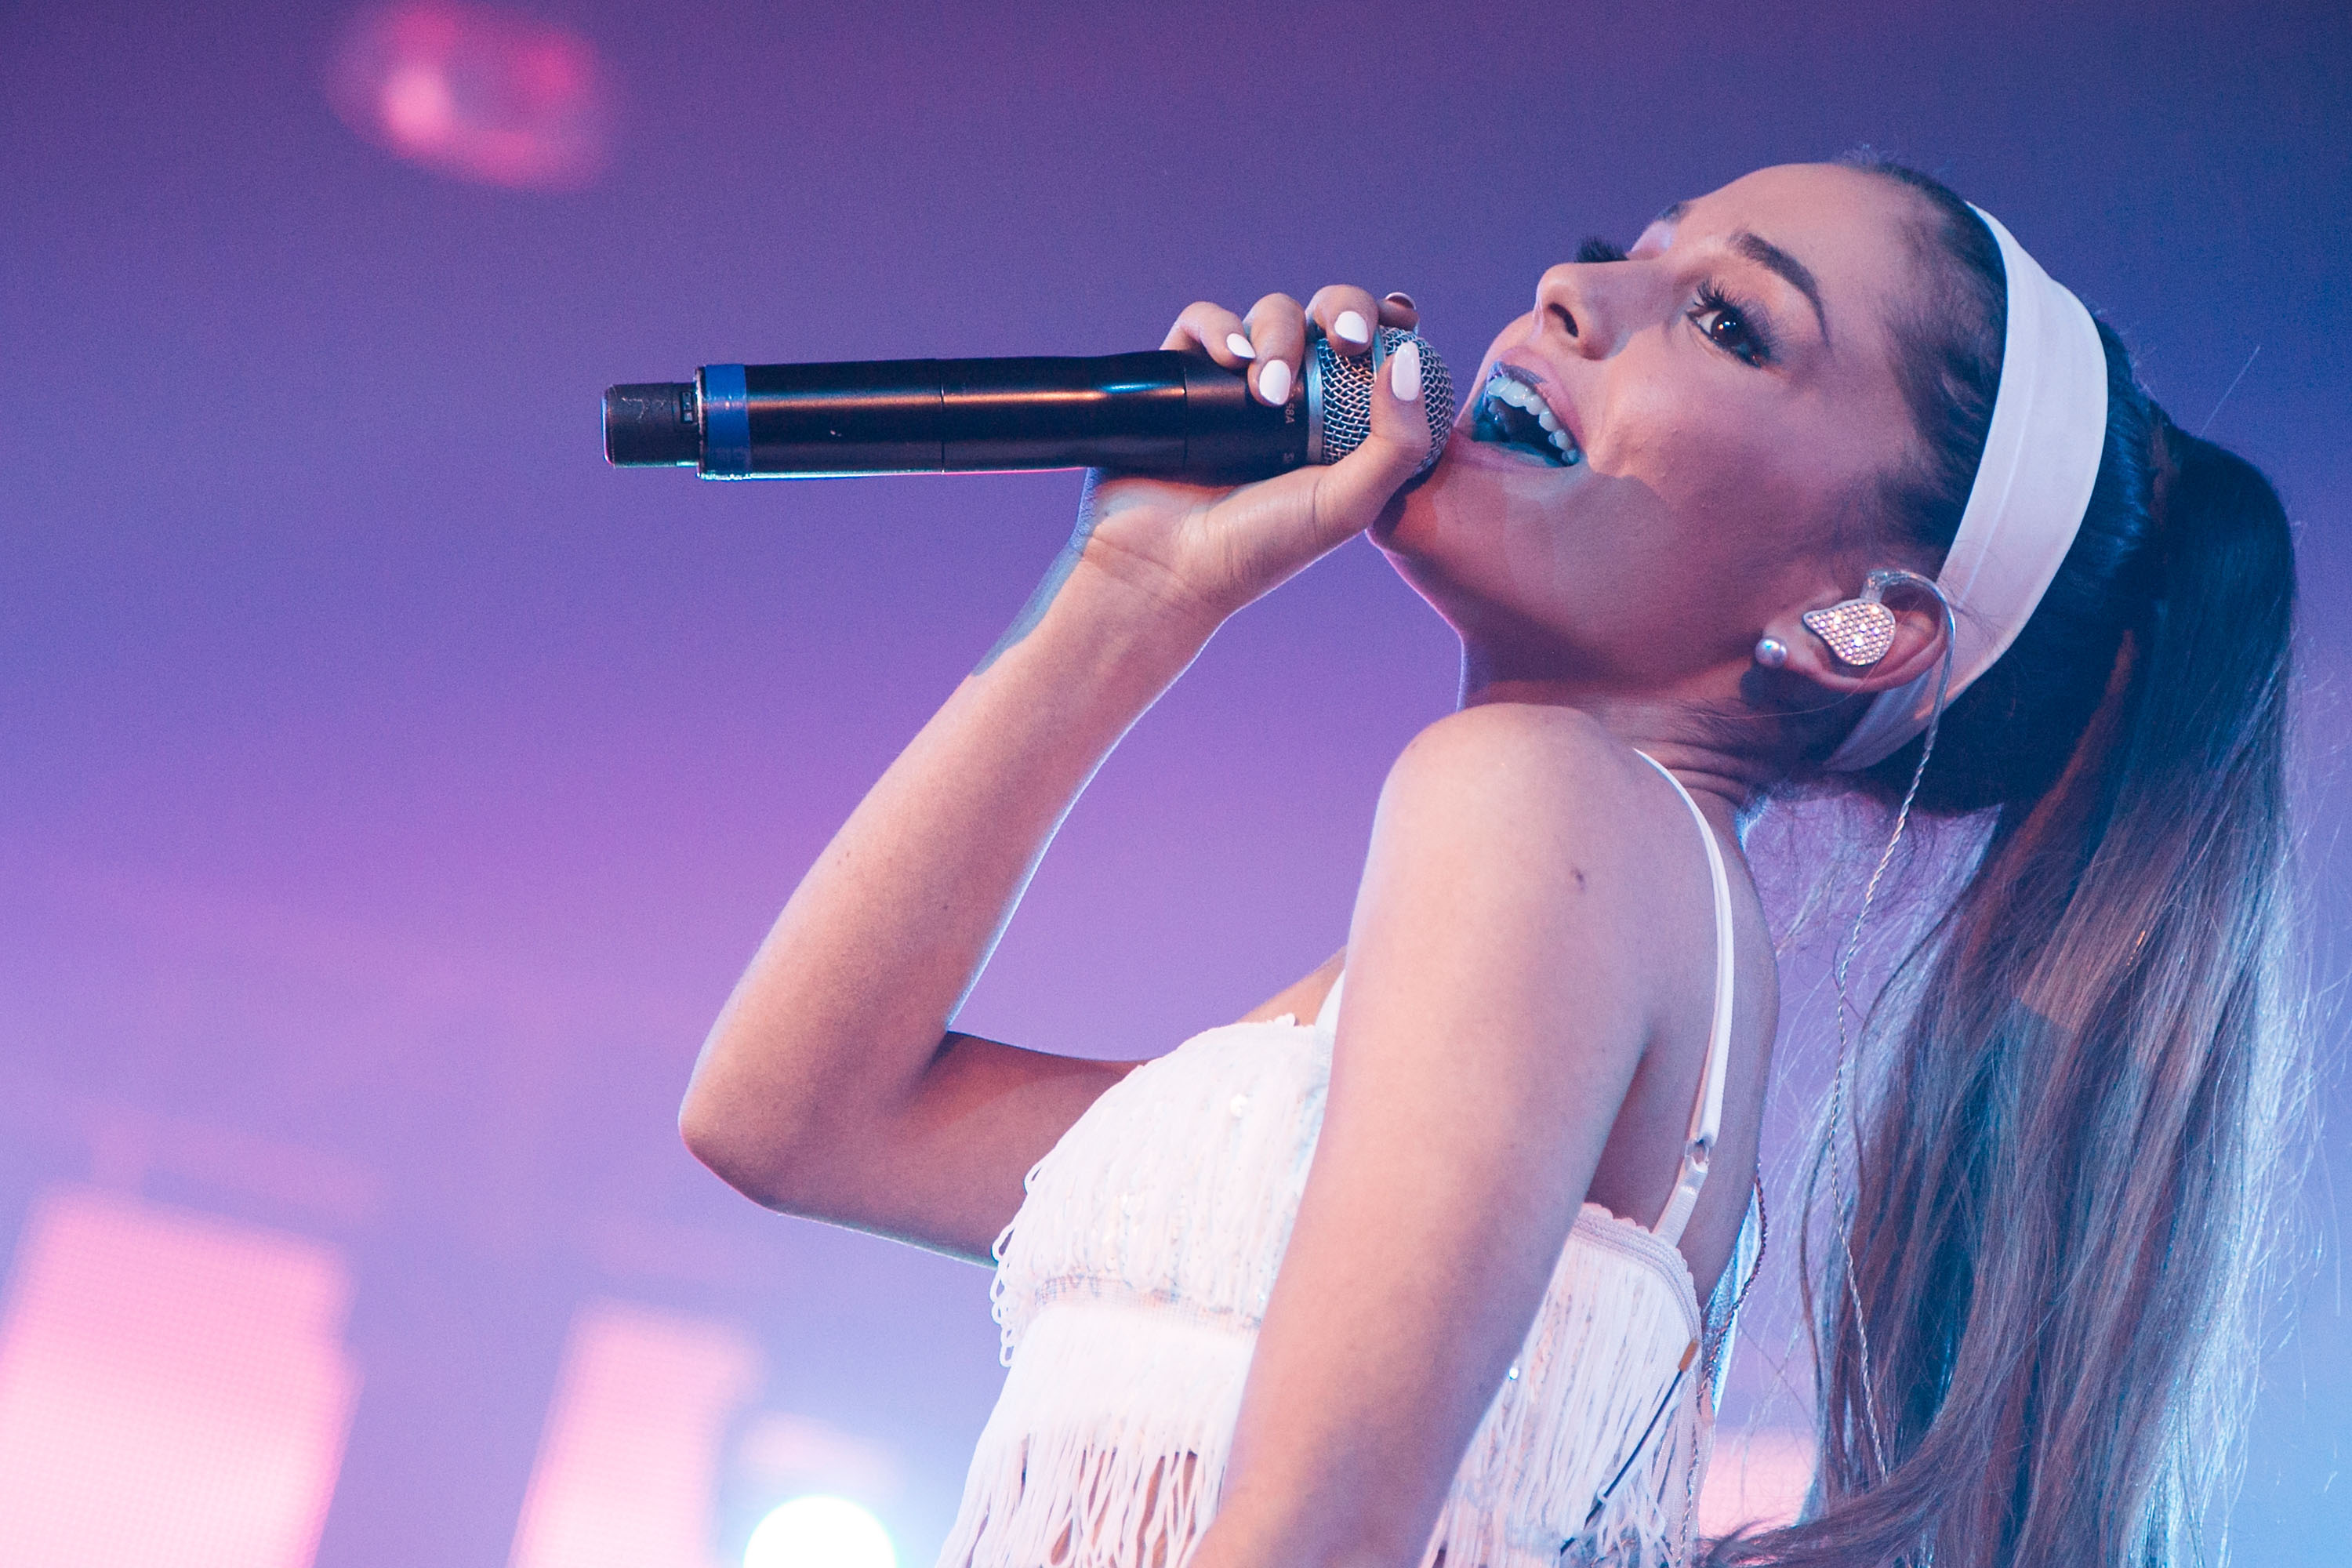 Ariana Grande in weird white outfit - Ariana Grande images - Sugarscape.com